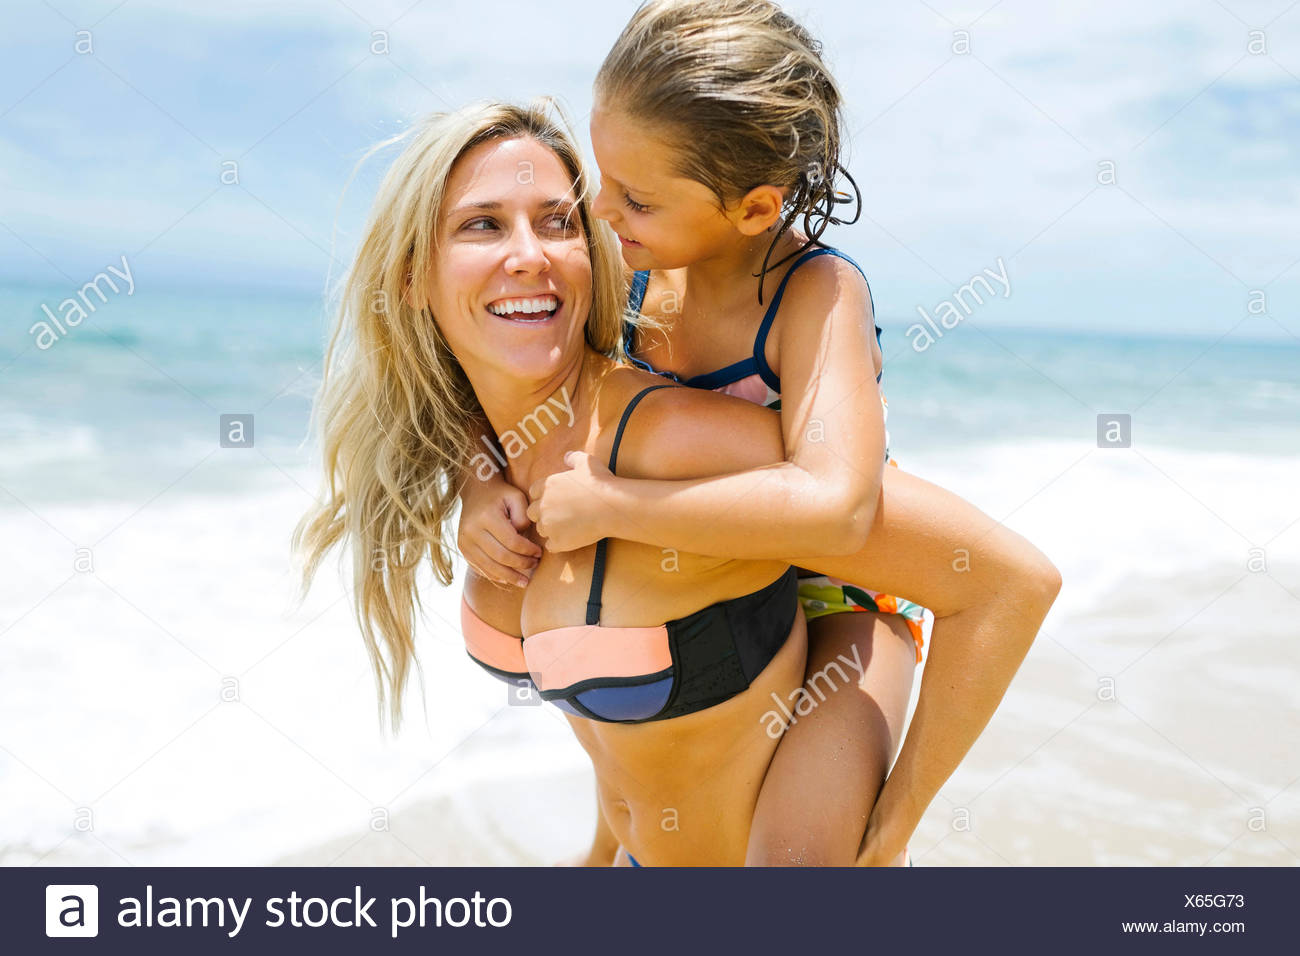 Mother carrying daughter (6-7) on back - Stock Image